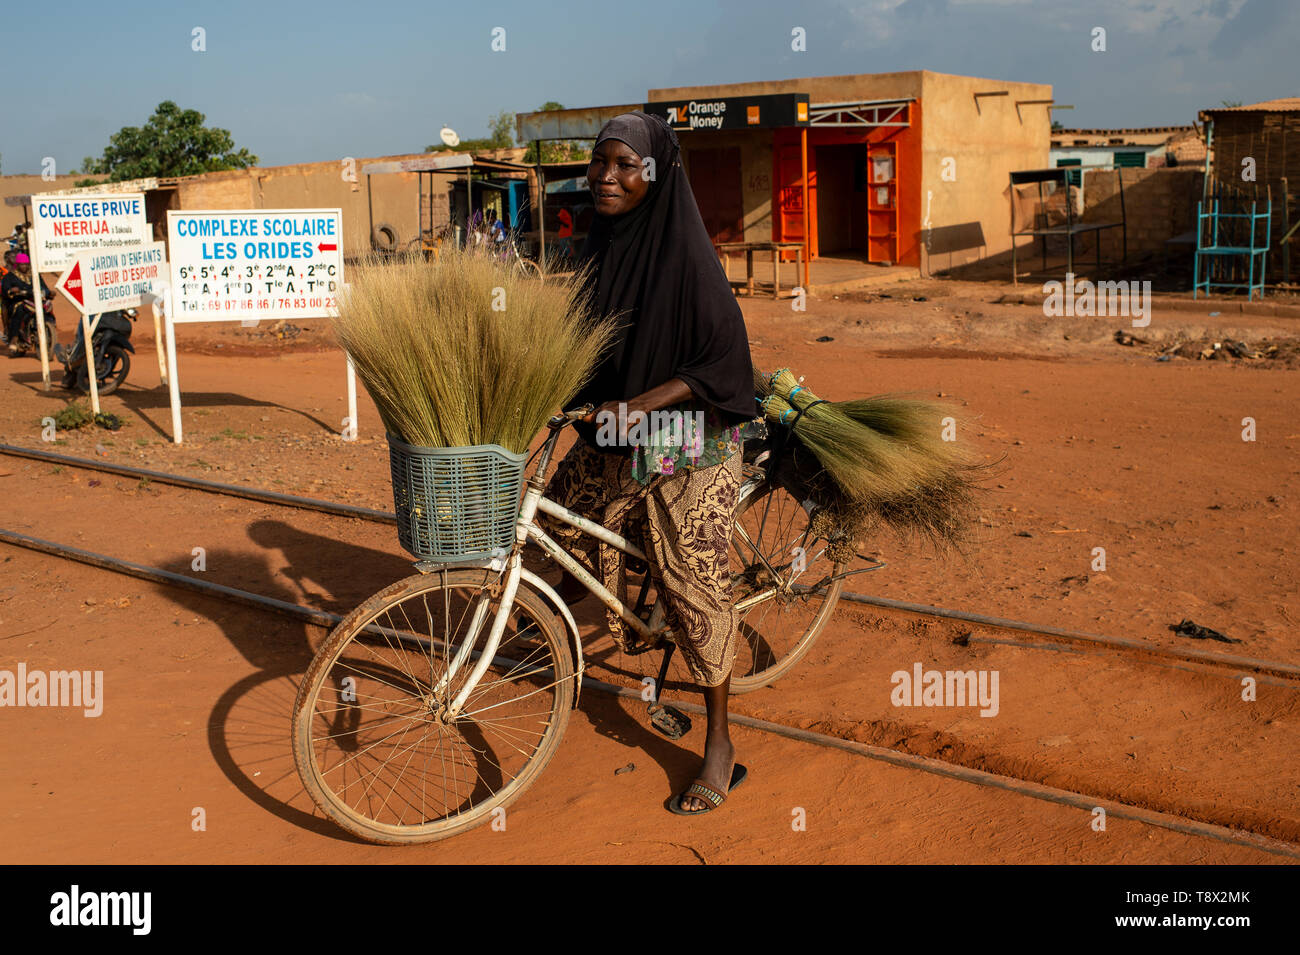 Velated Muslim woman in the streets of Ouagadougou, capital of  Burkina Faso, one of the most poor country of Africa - Stock Image